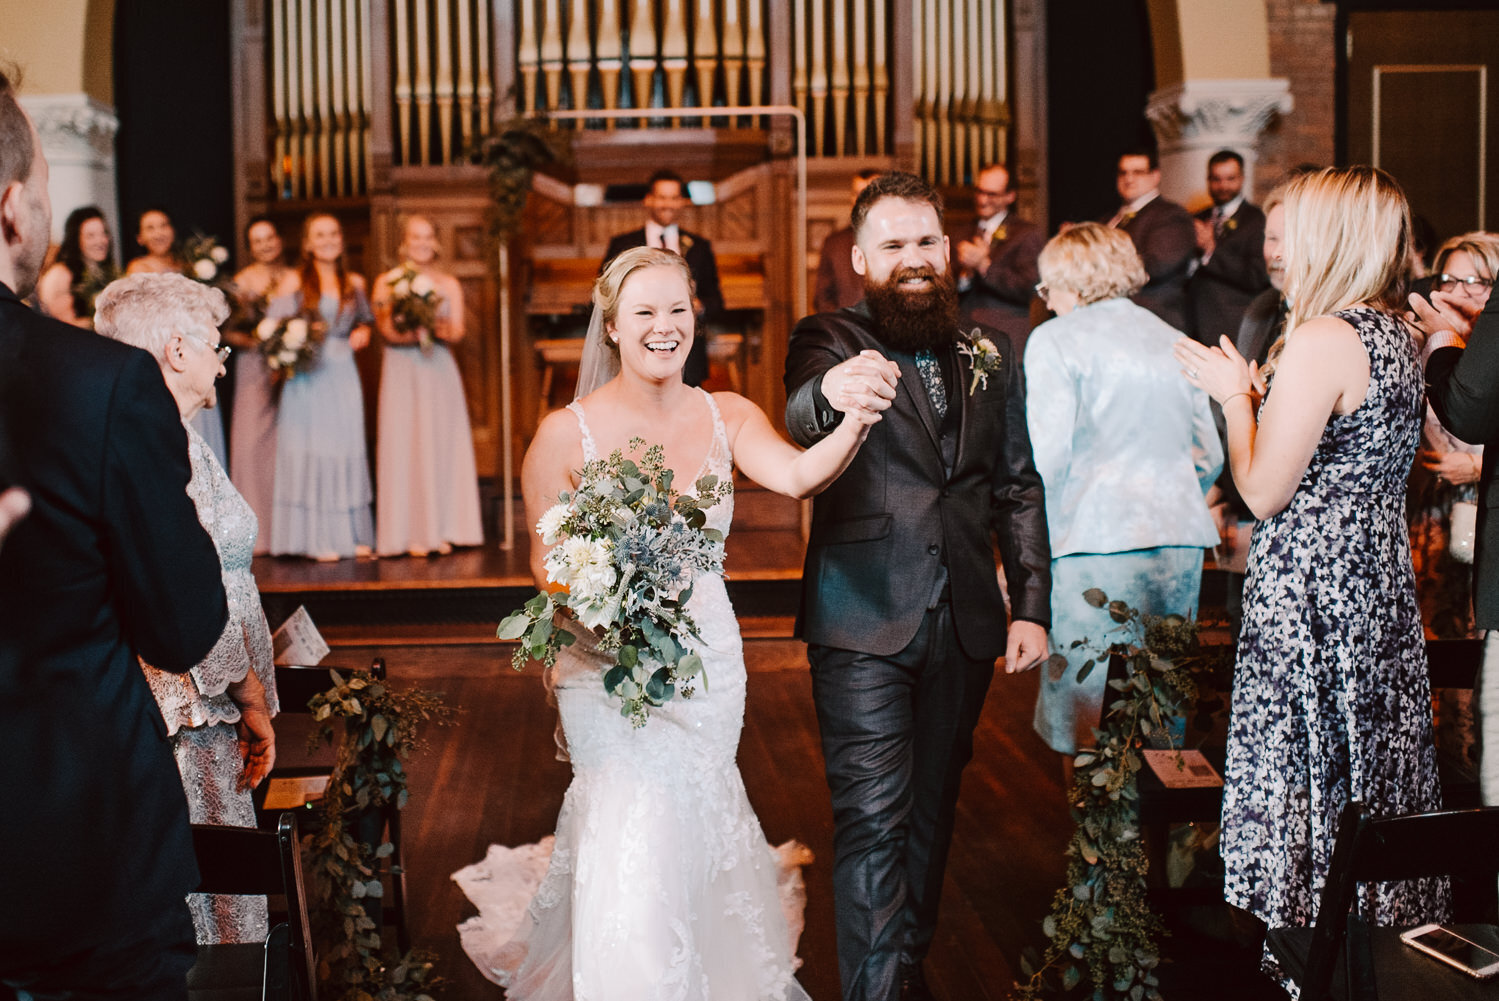 clementine-nashville-wedding-24